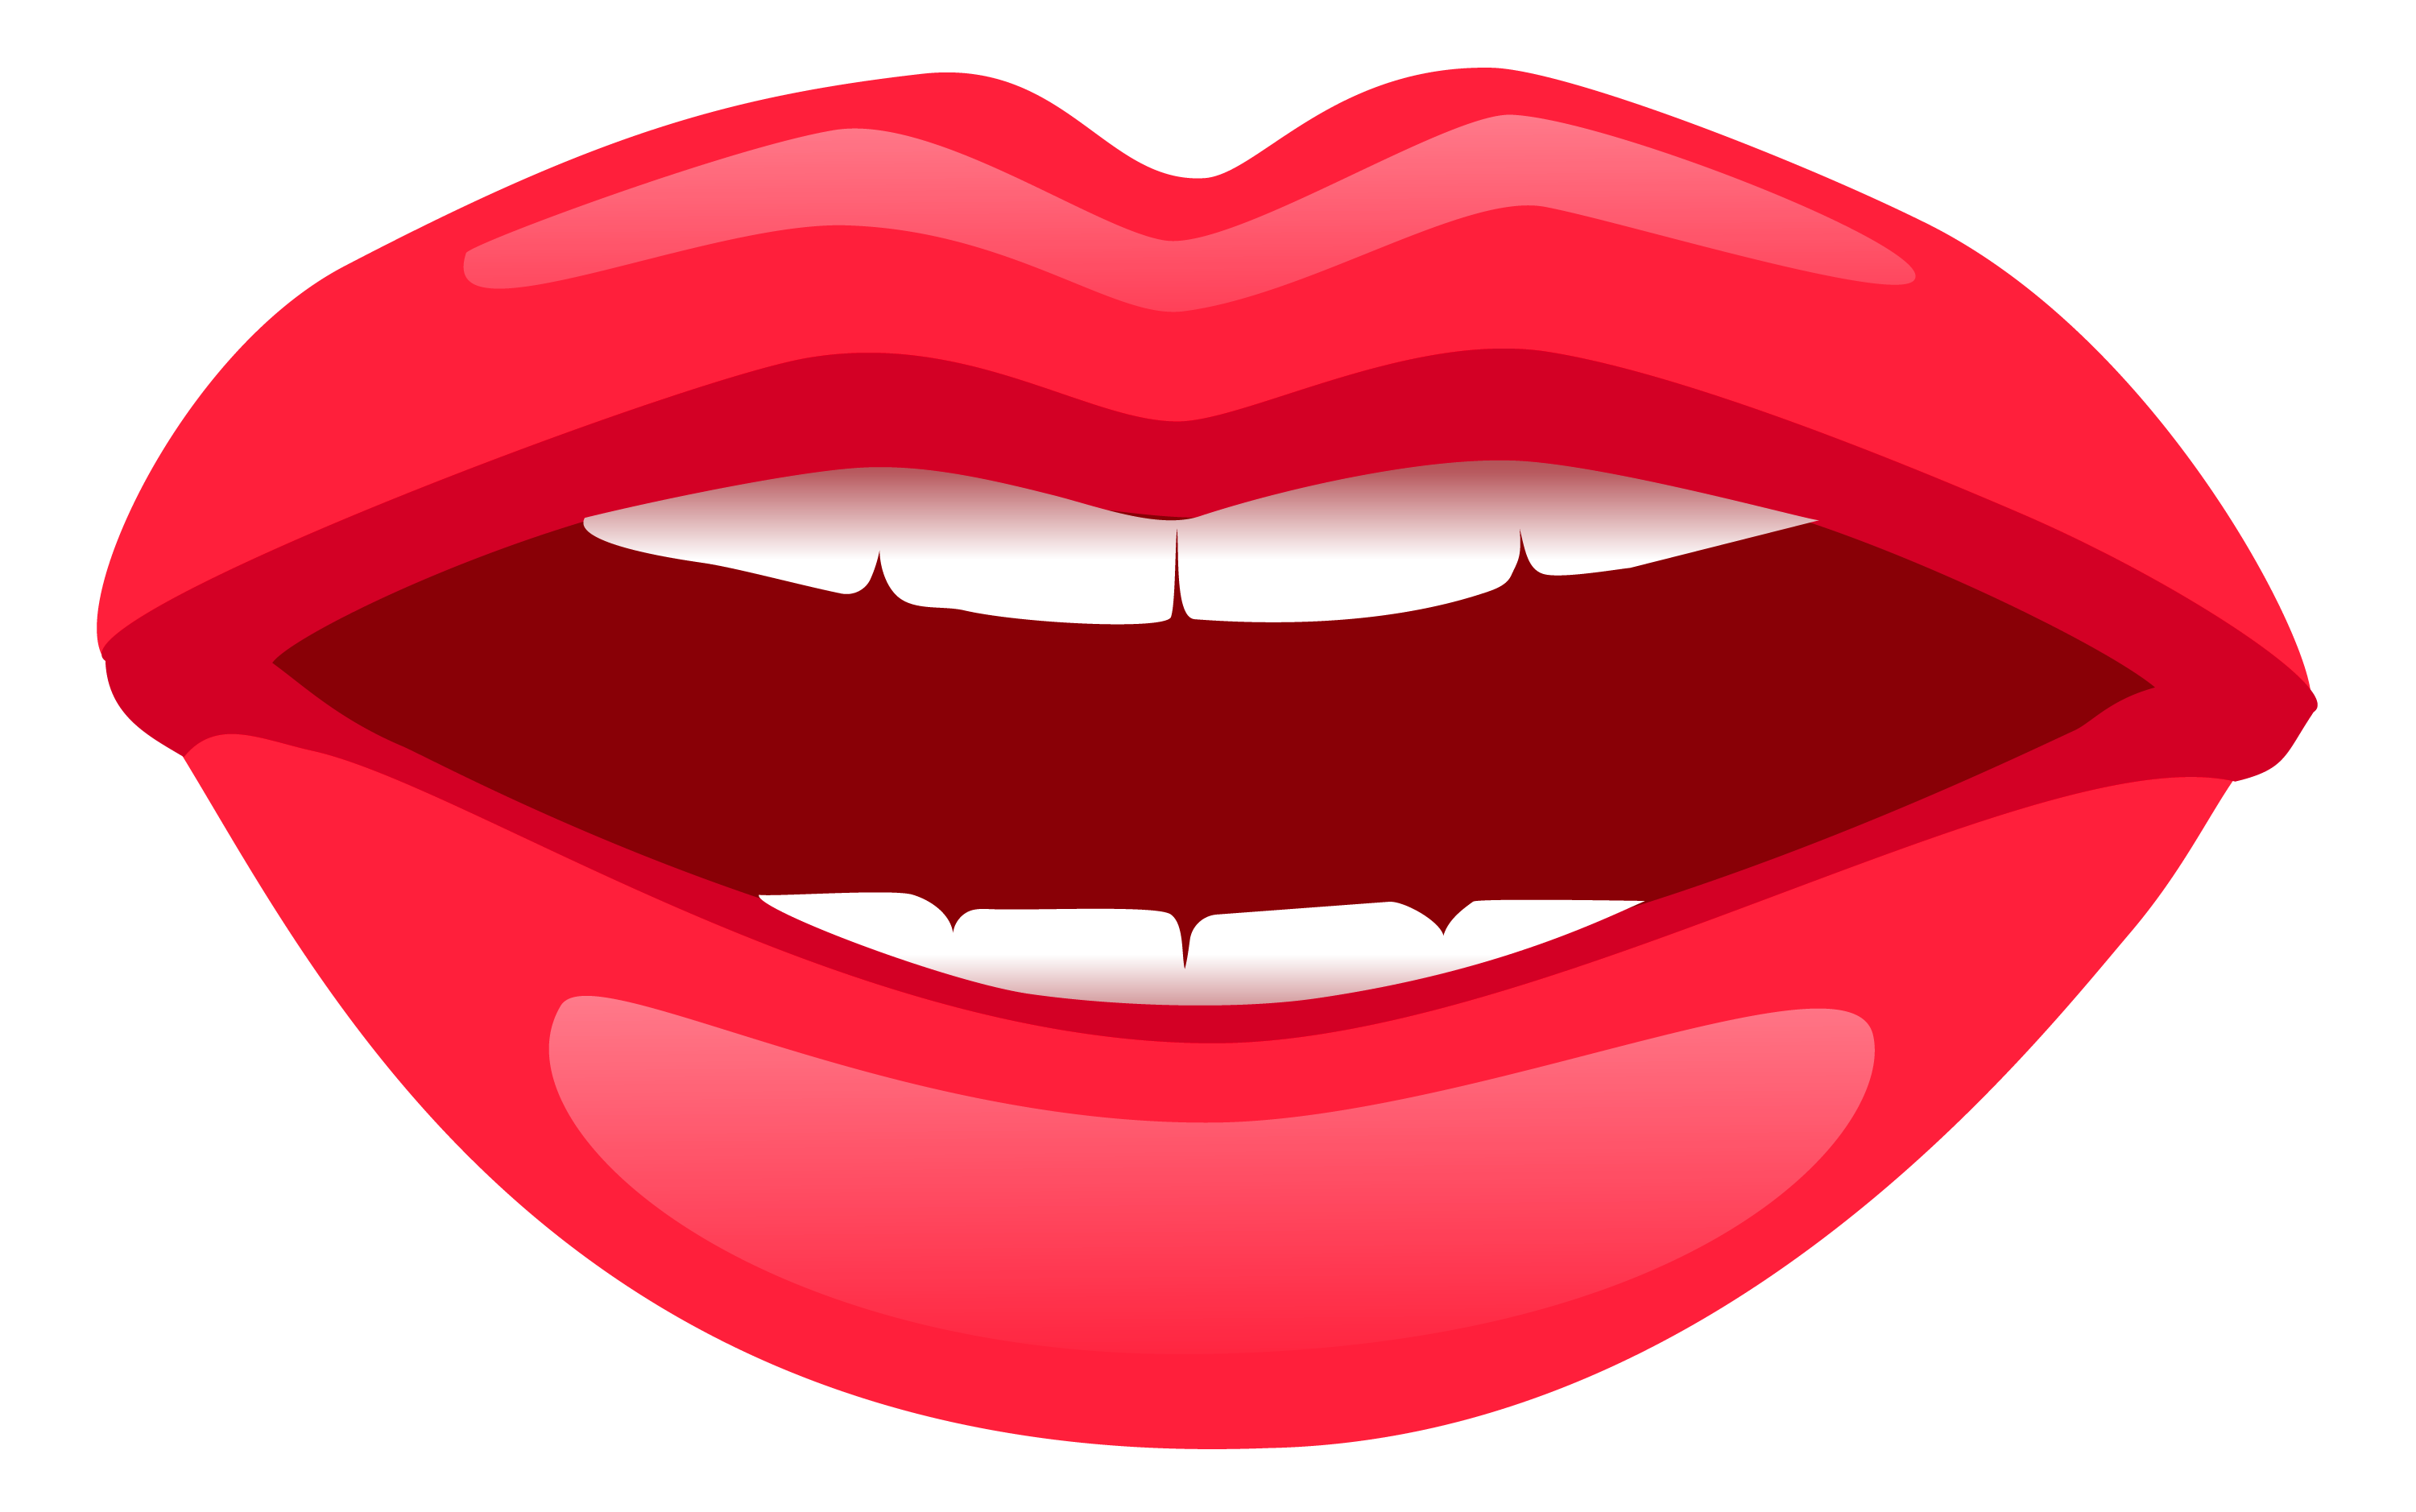 mouth clipart transparent - Clipground